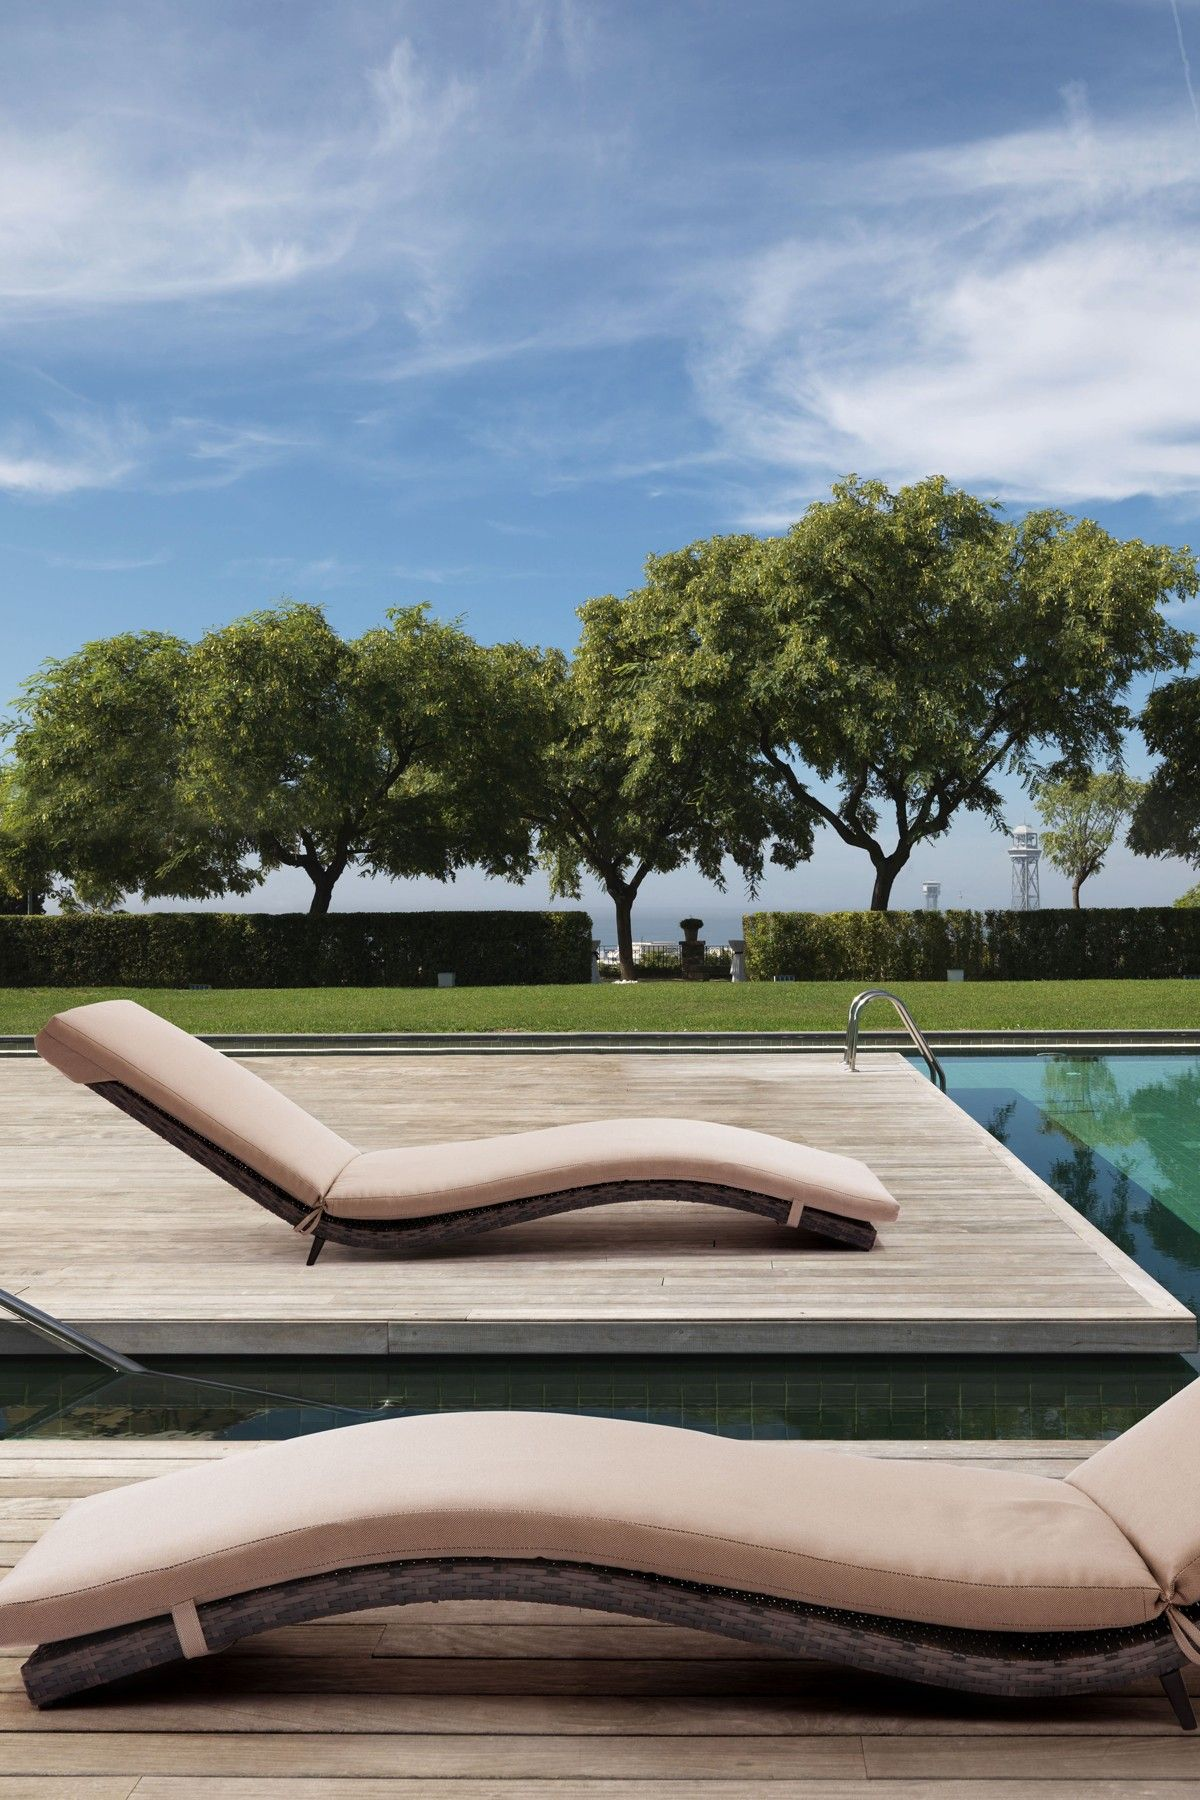 Pin By Hannah On Product Design Inspiration Things I Love Outdoor Outdoor Chaise Lounge Chair Outdoor Chaise Lounge Modern outdoor pool lounger